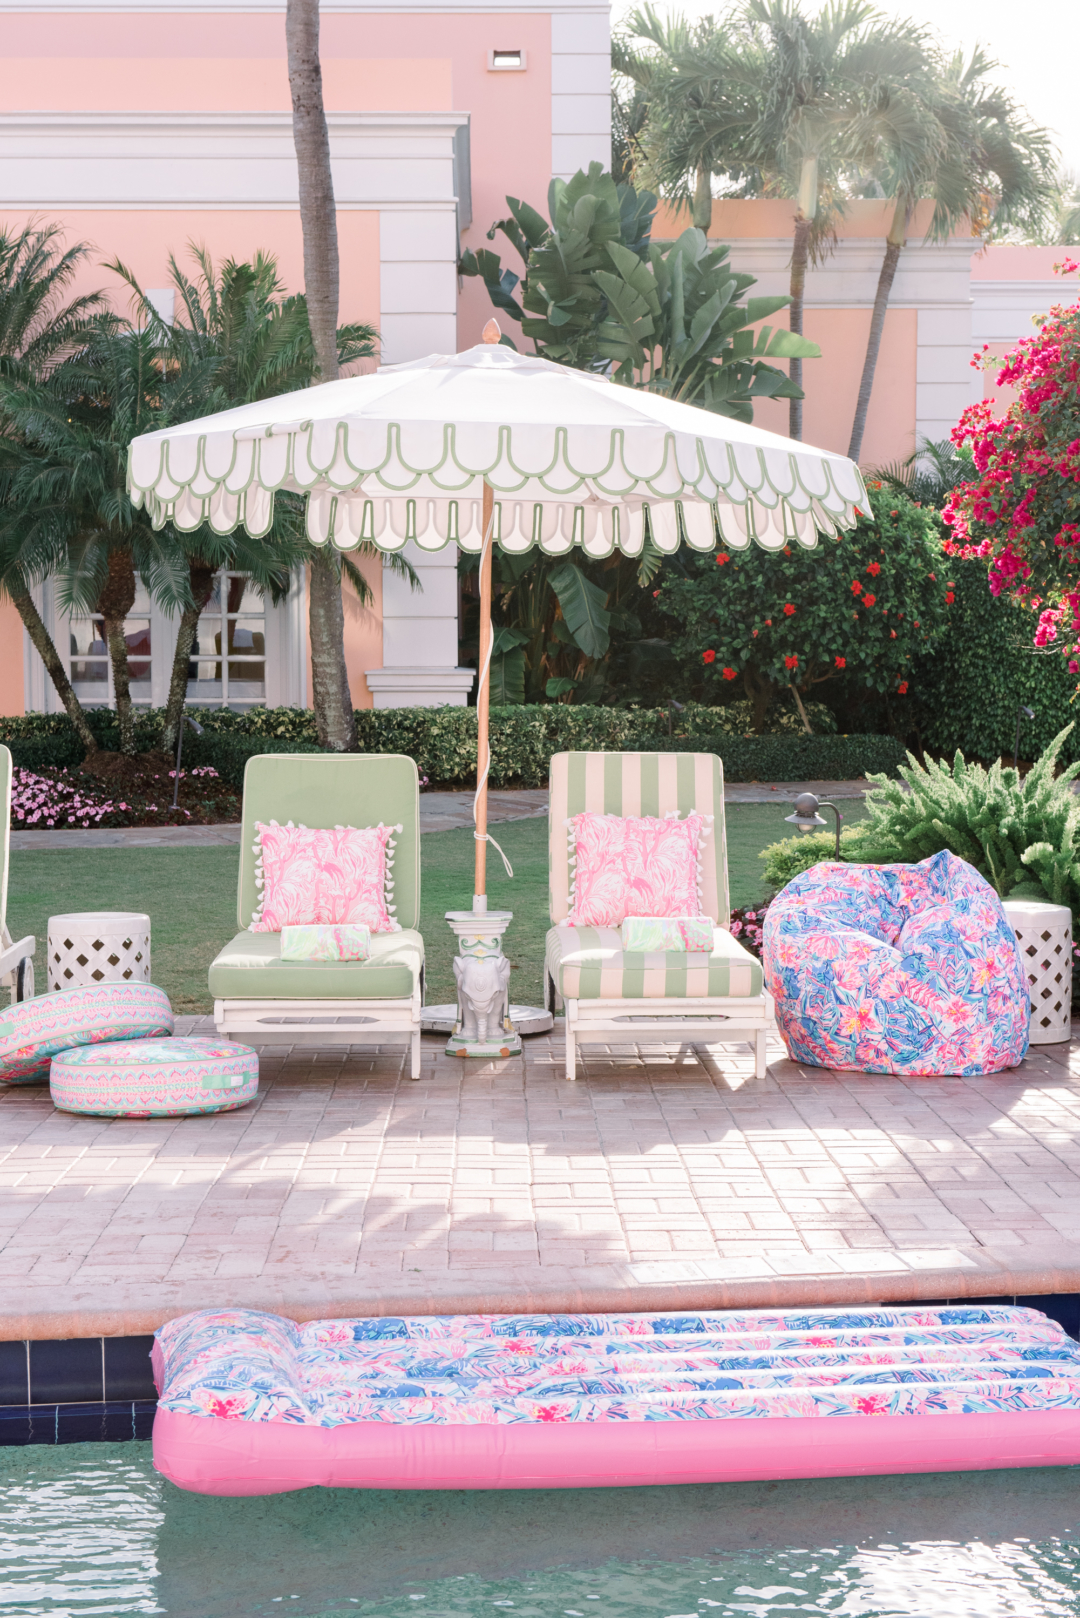 Home: Pottery Barn x Lilly Pulitzer with Palm Beach Lately